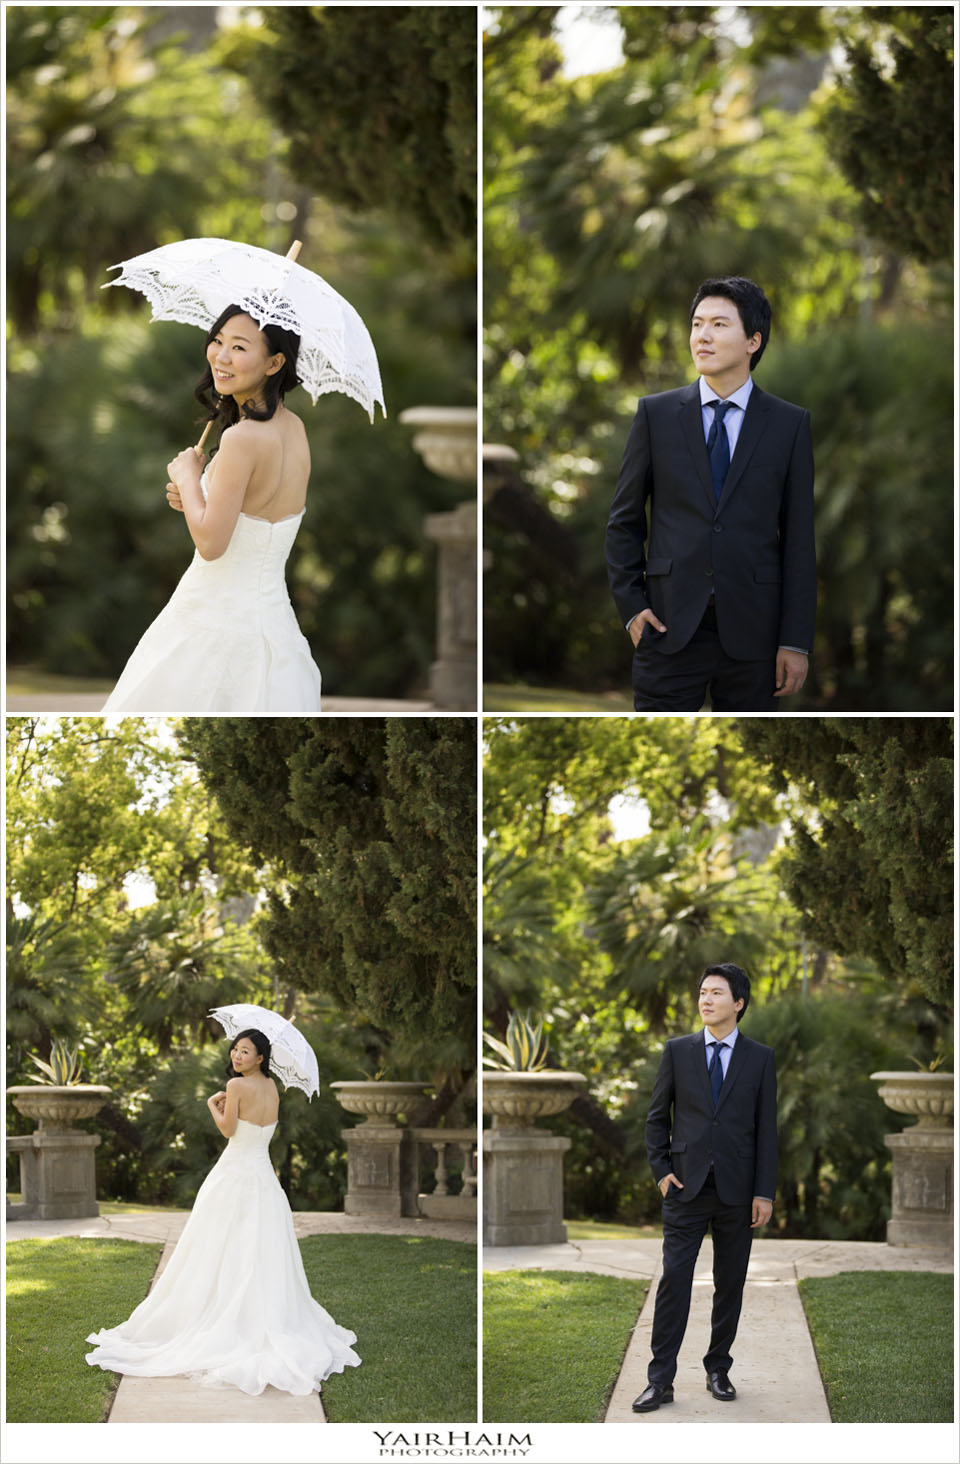 Kimberly-Crest-wedding-pictures-photography-California-5